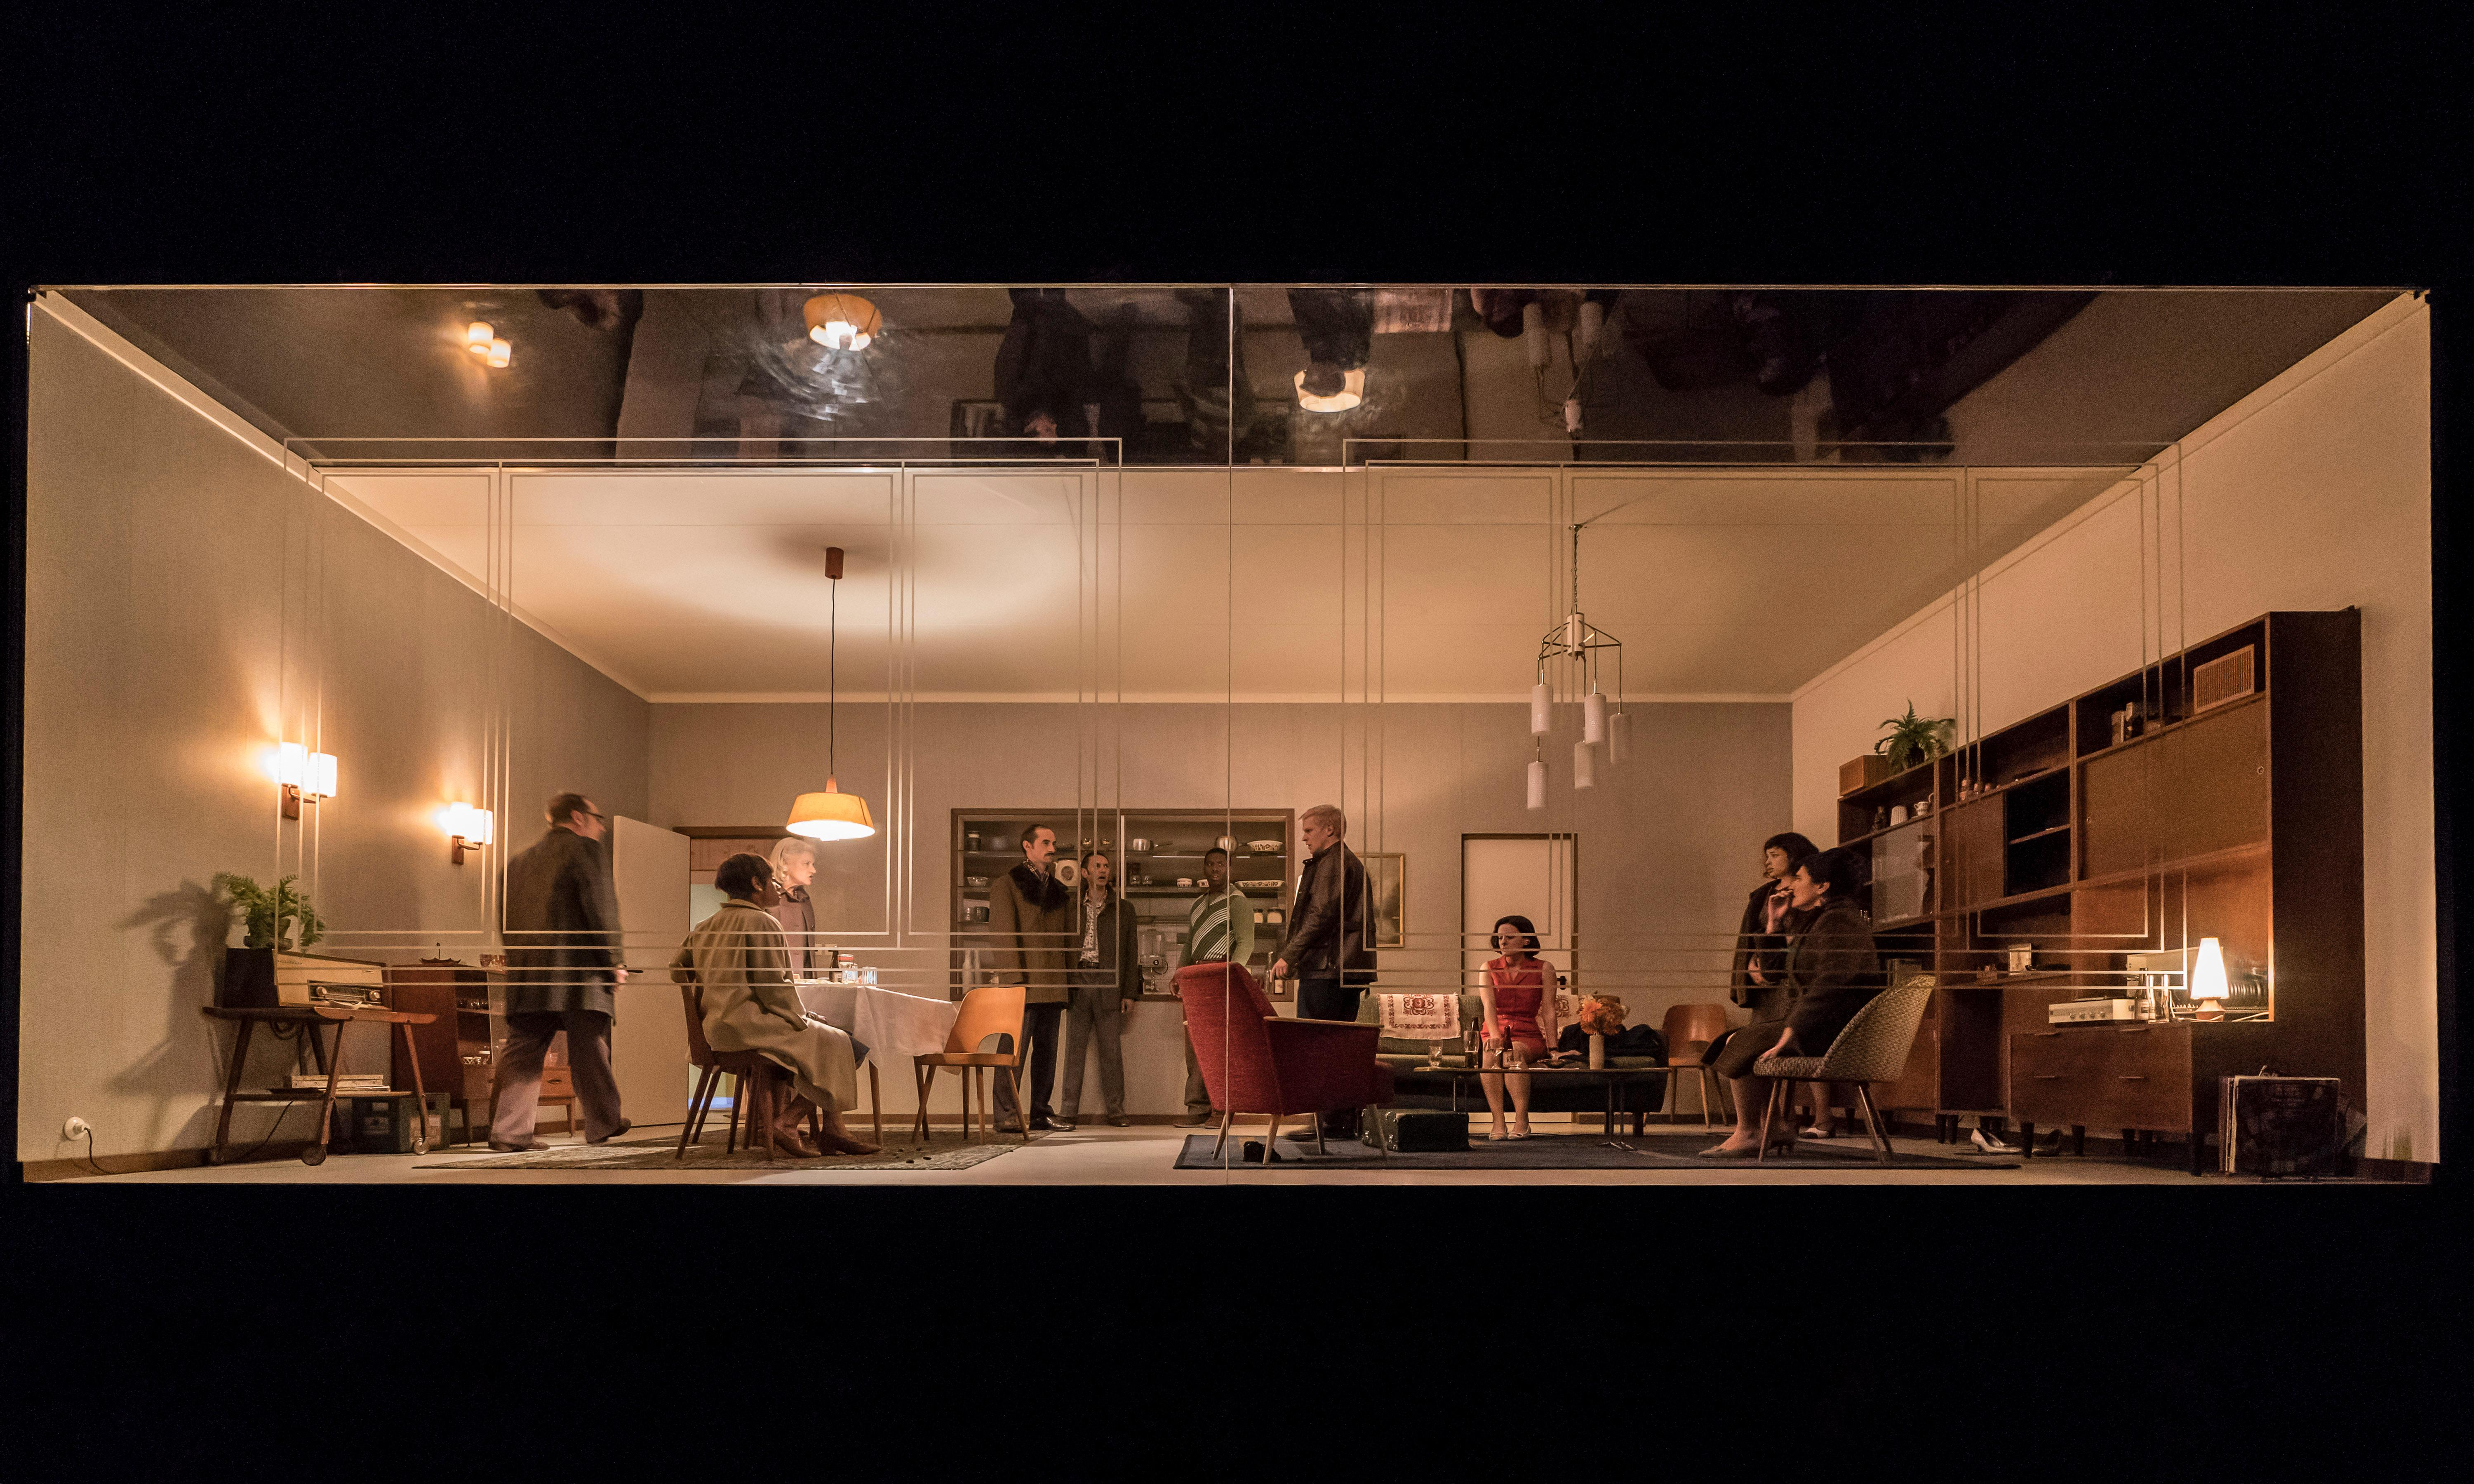 Wired up: East Berlin thriller makes National Theatre a surveillance centre